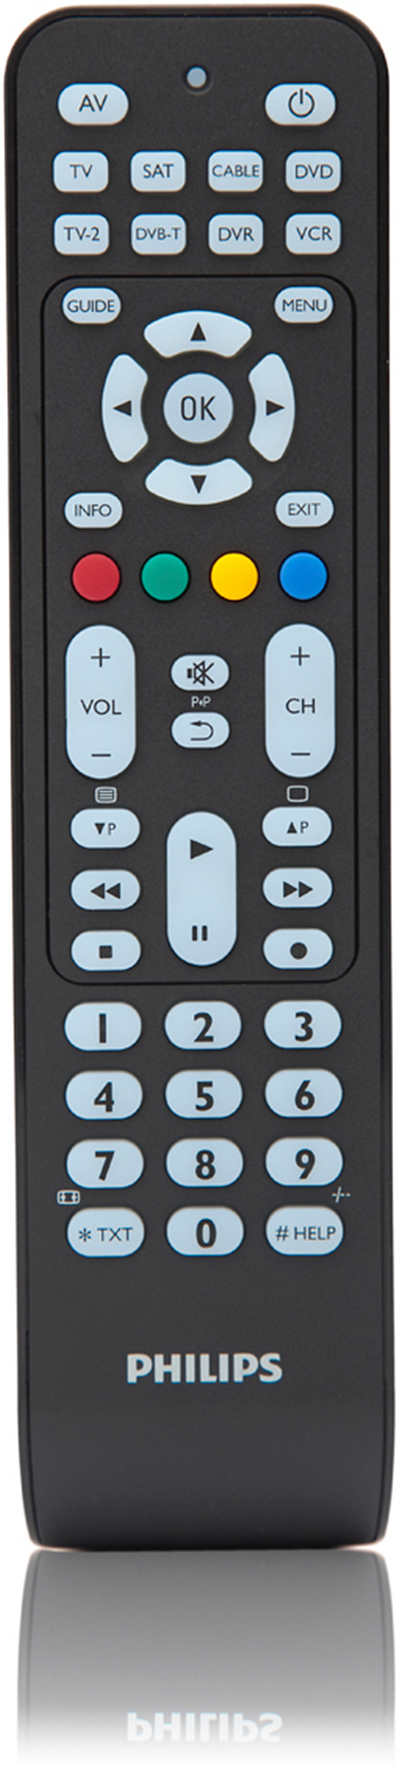 Rørig Perfect replacement Universal remote control SRP2008B/86 | Philips DM-77